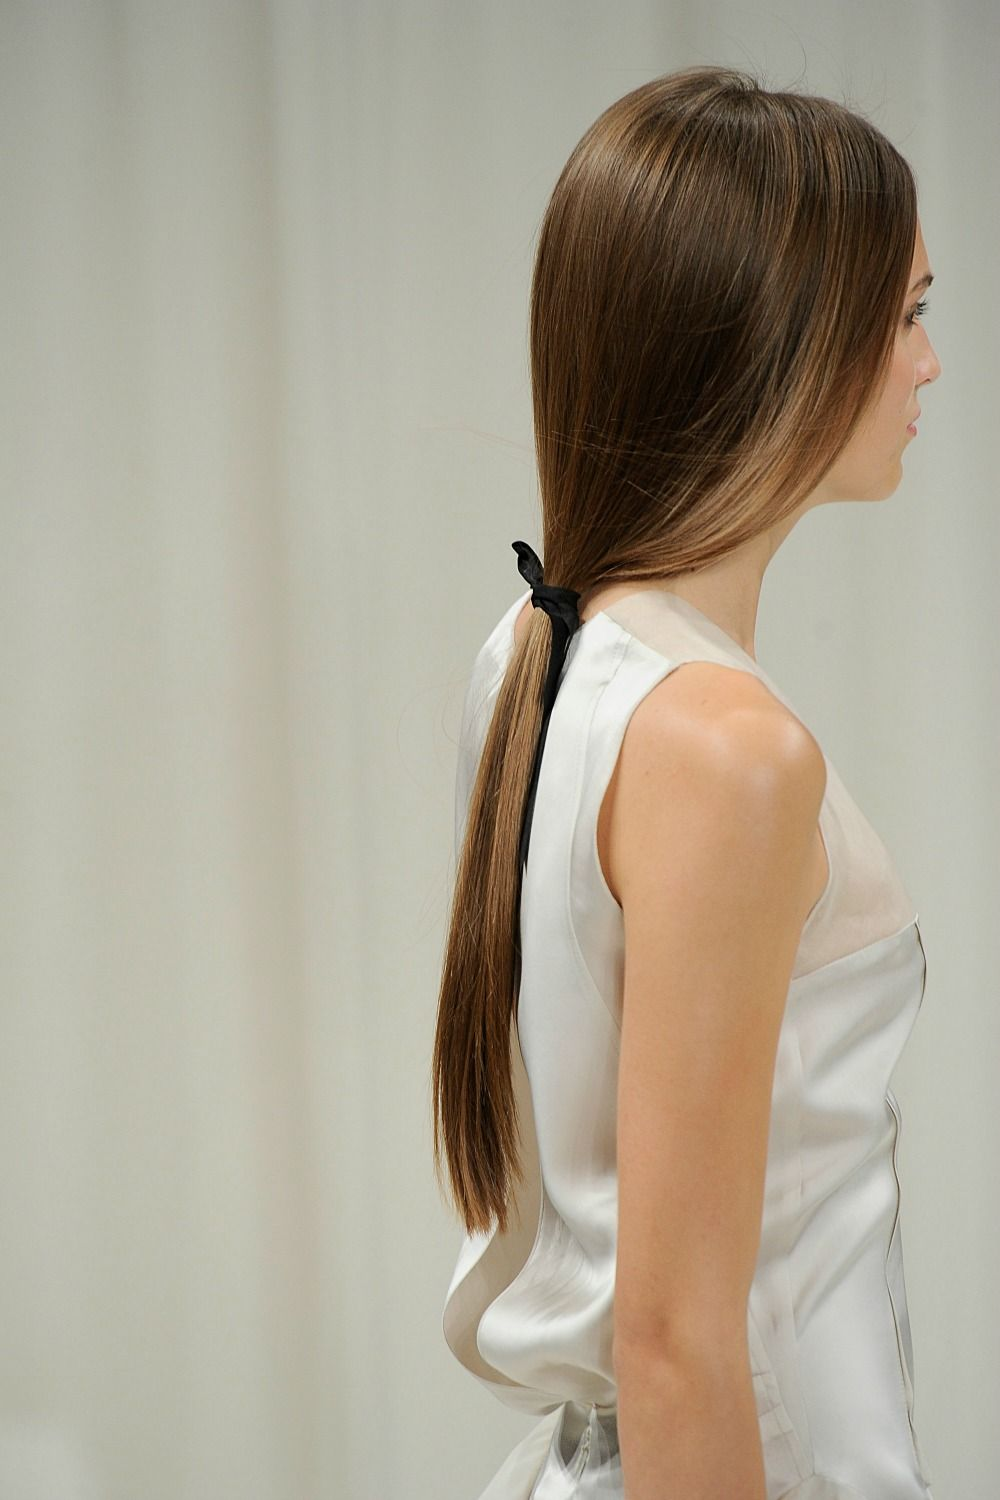 20 Ponytail Hairstyles